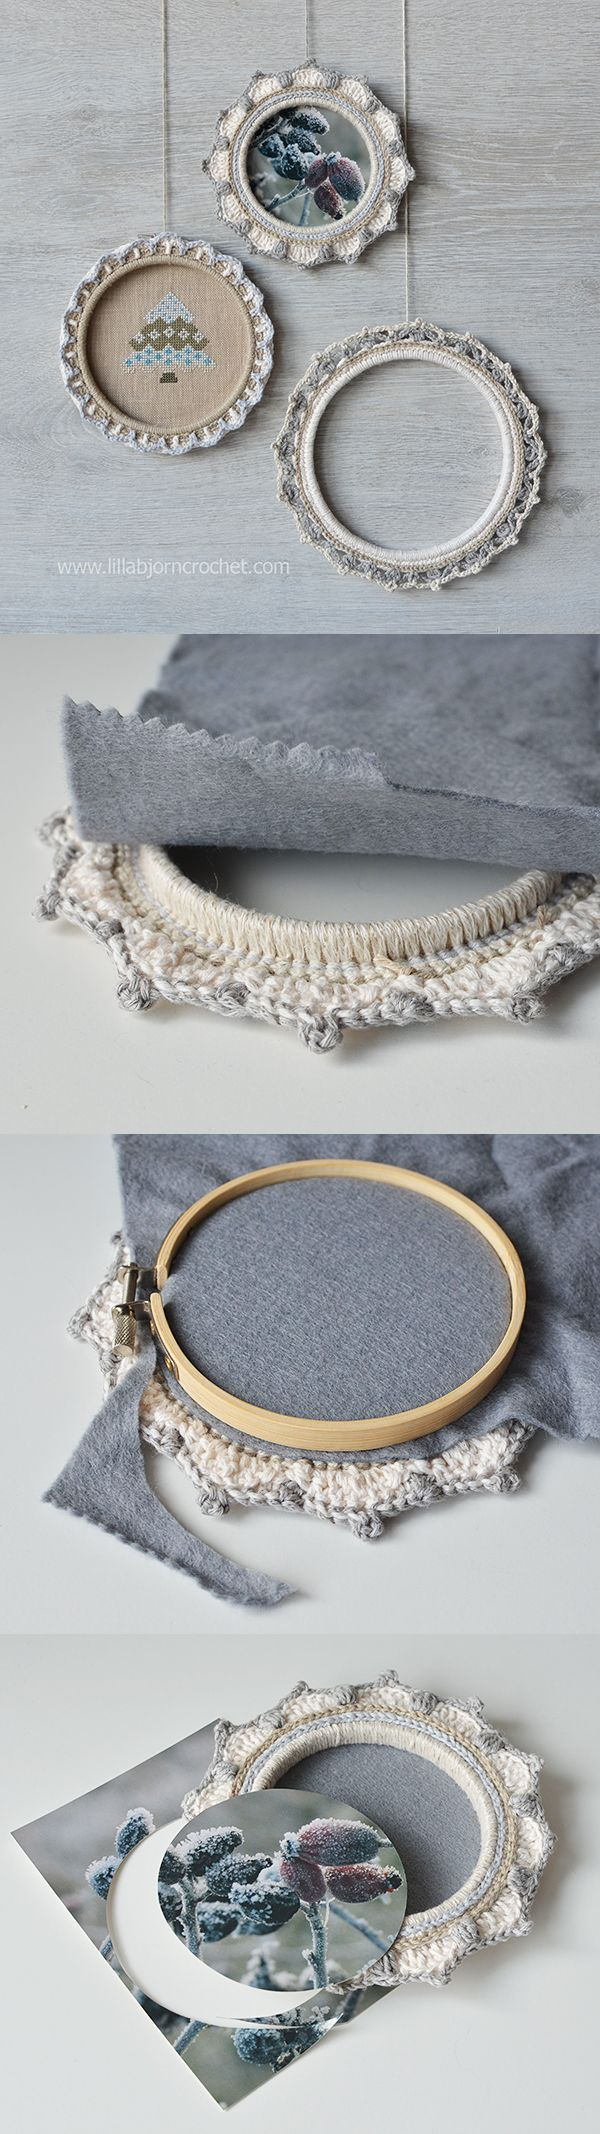 How to very easily turn embroidery hoops with crochet border into frames for pictures (and embroidery). Tutorial by Lilla Bjorn Crochet